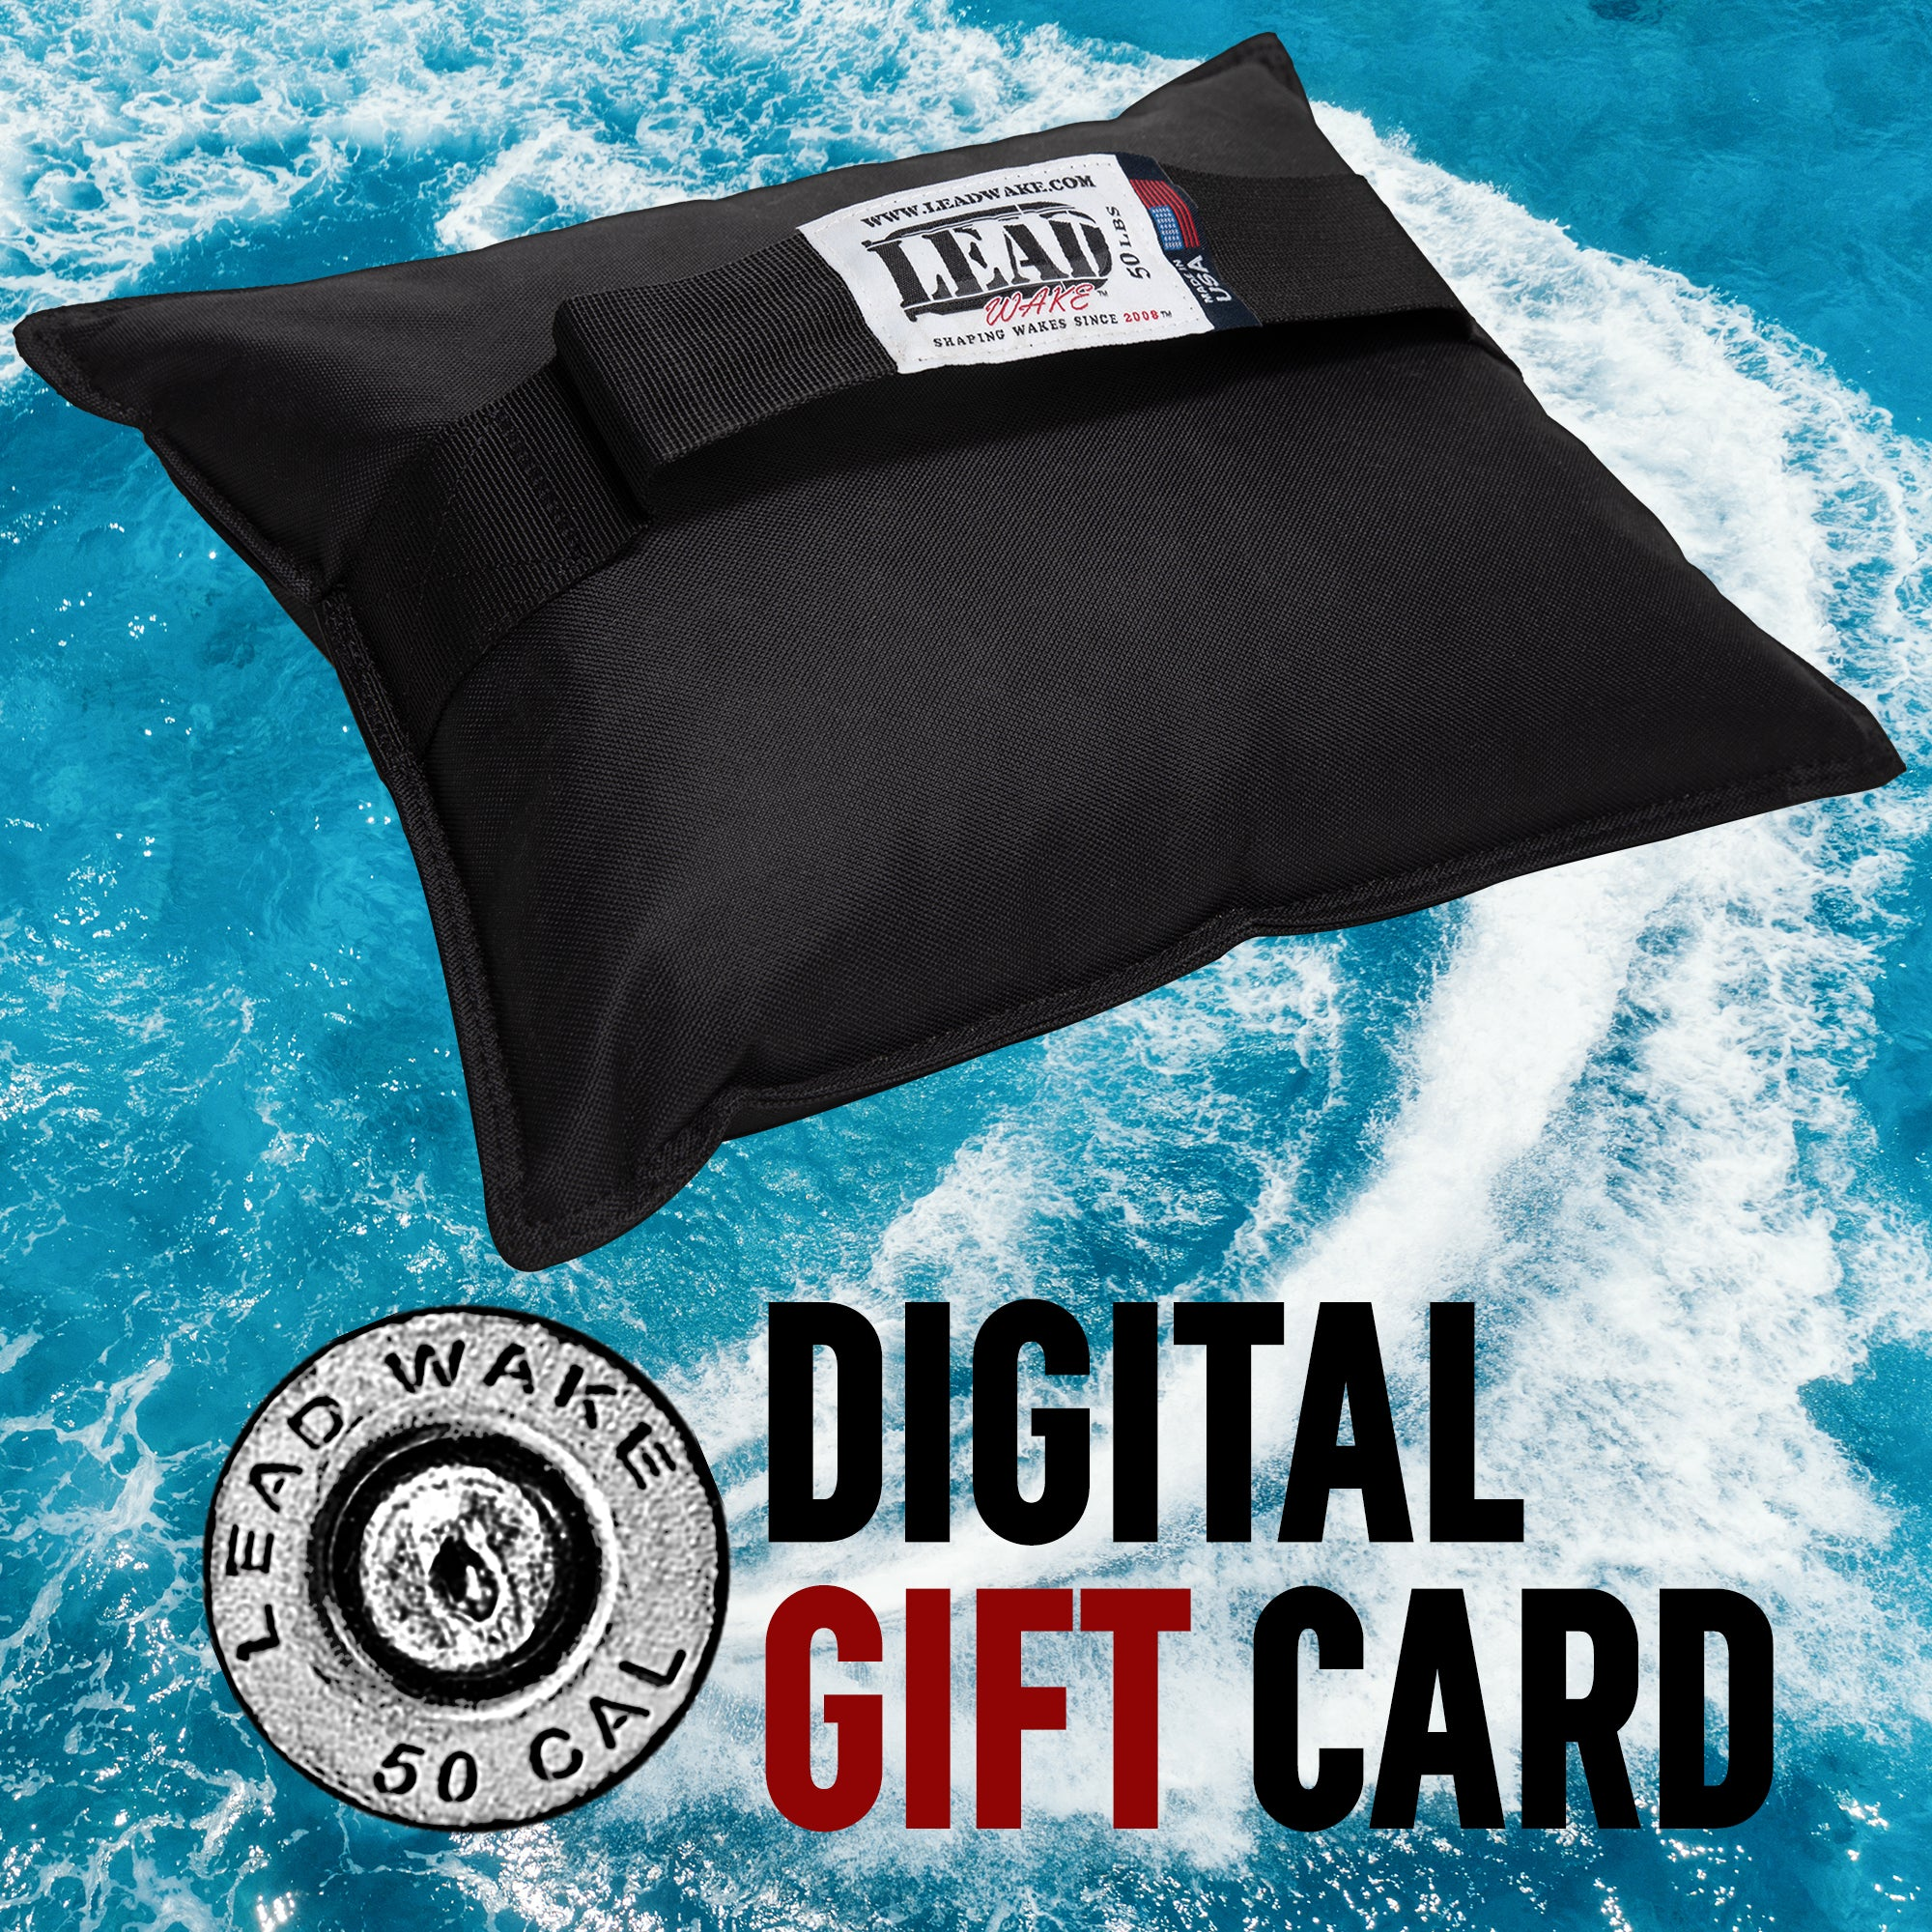 Lead Wake <br> Gift Card